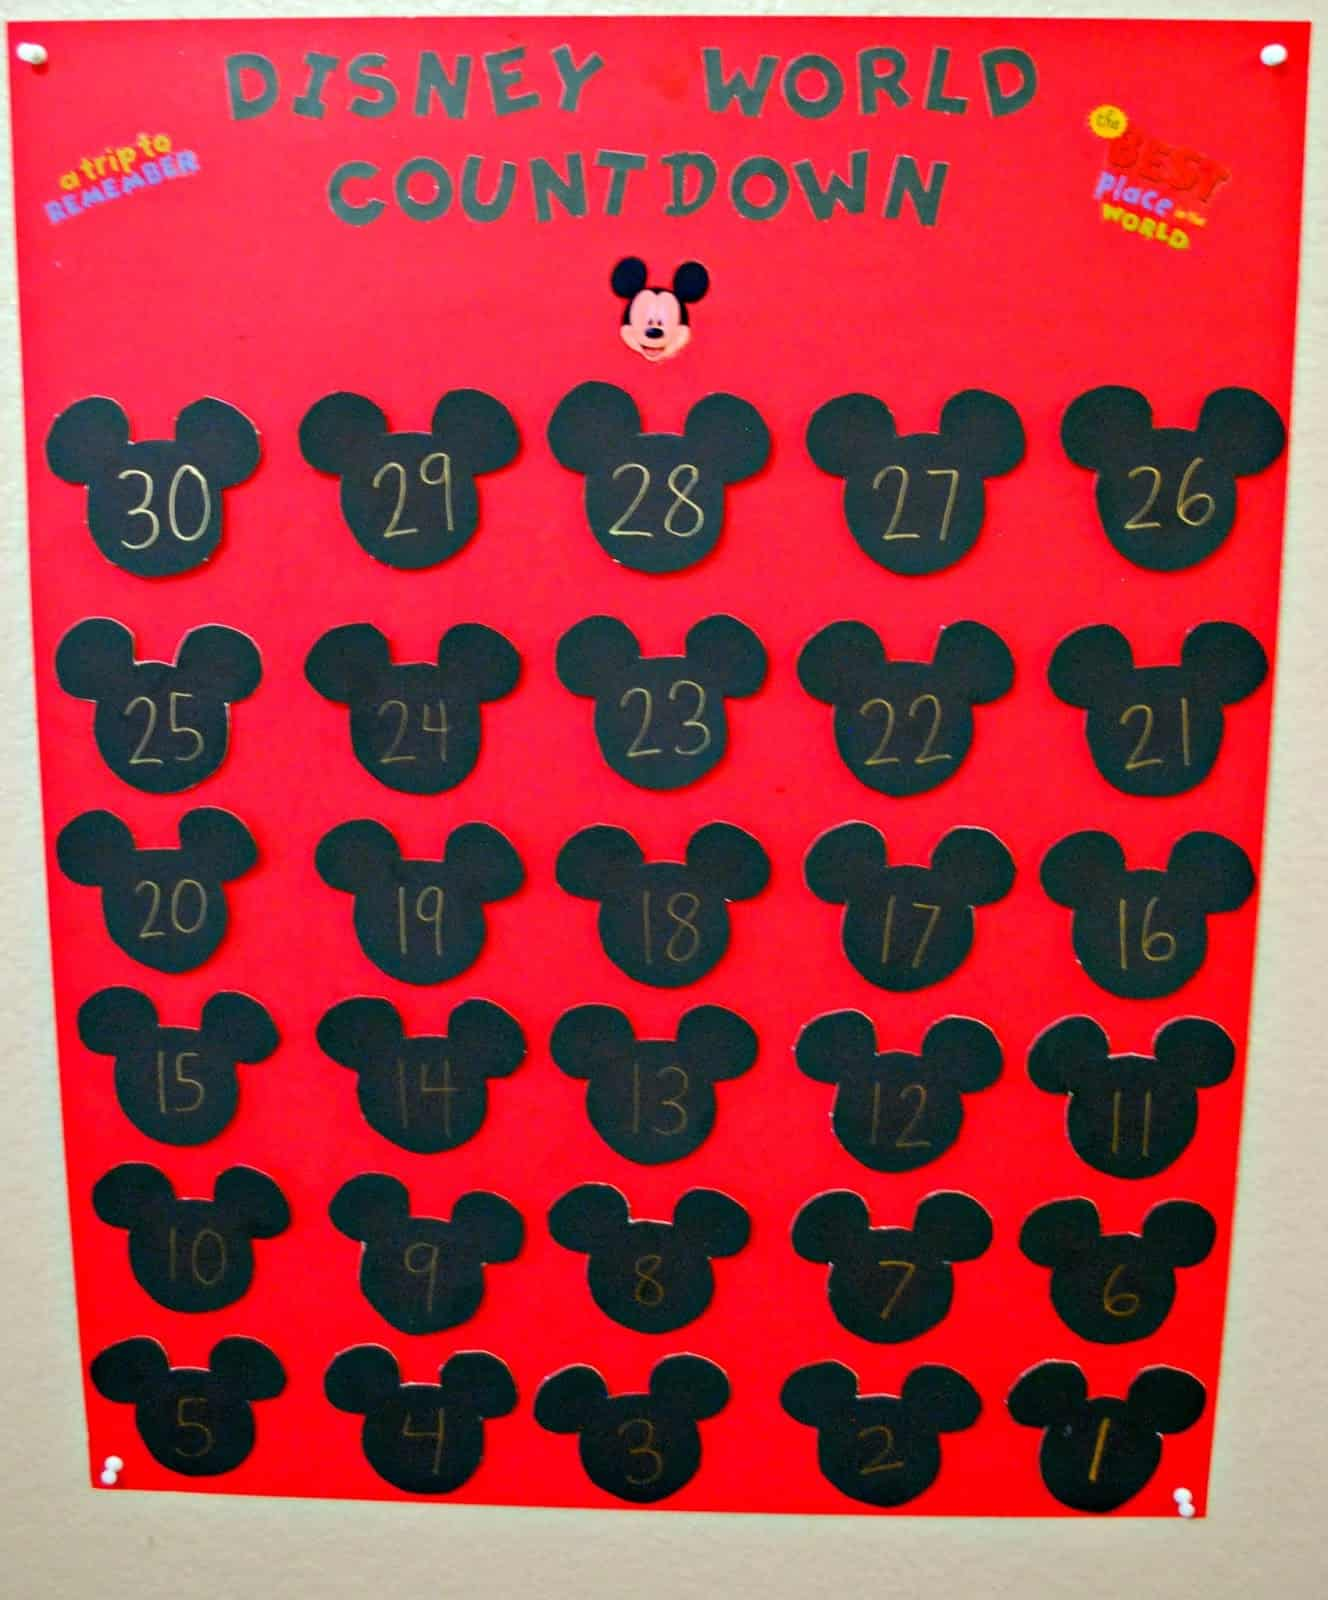 image regarding Disney Countdown Calendar Printable titled Disney Globe Countdown Calendar - Mess for A lot less